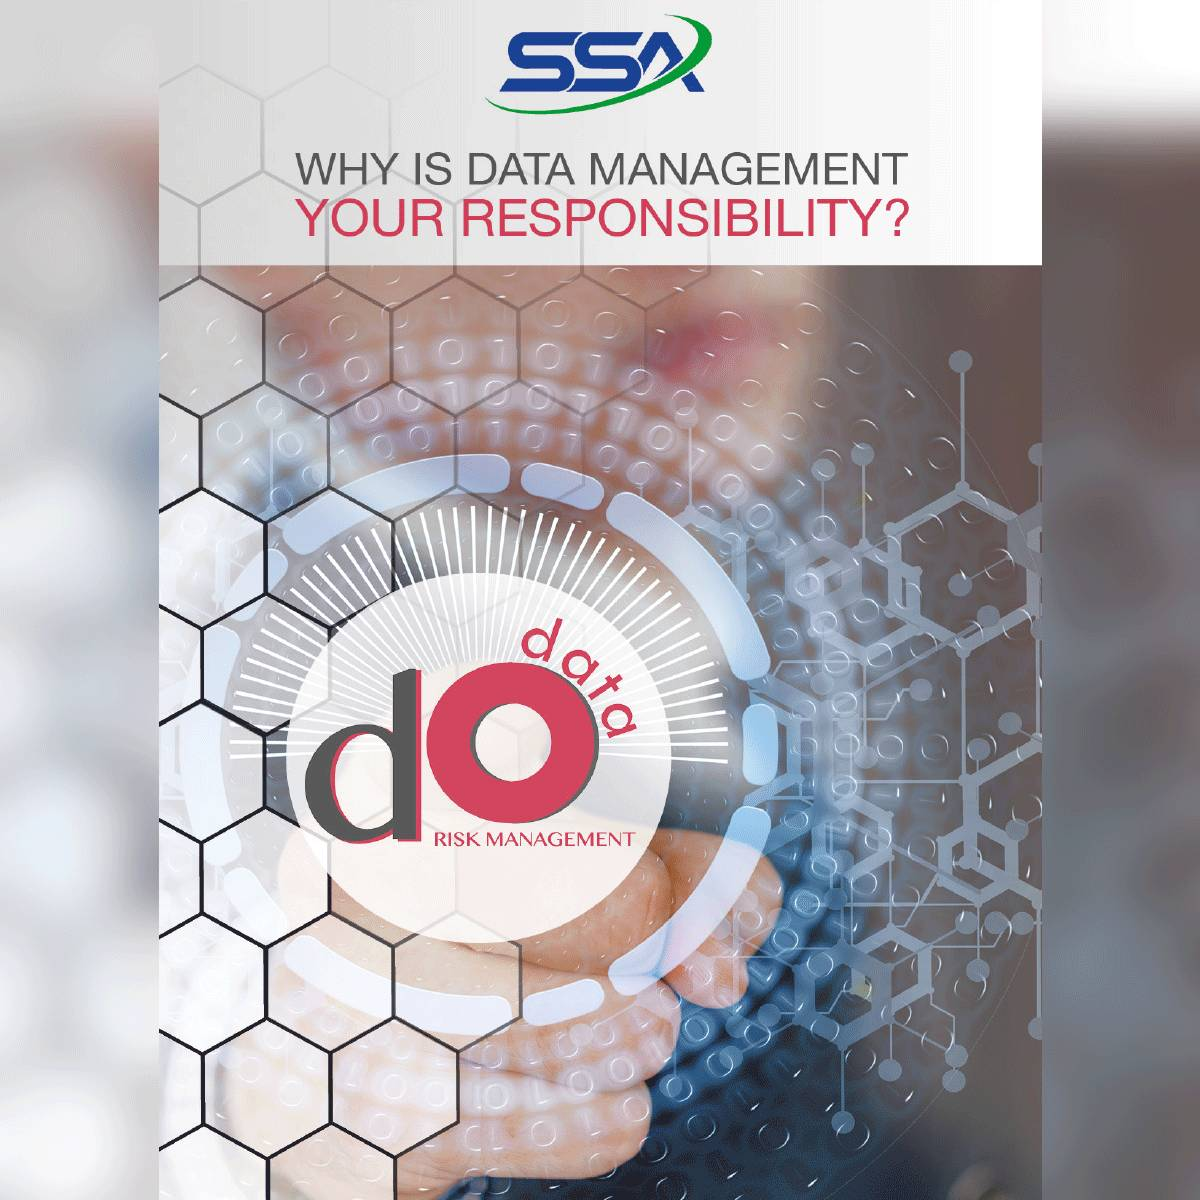 Why is Data Management your responsibility?